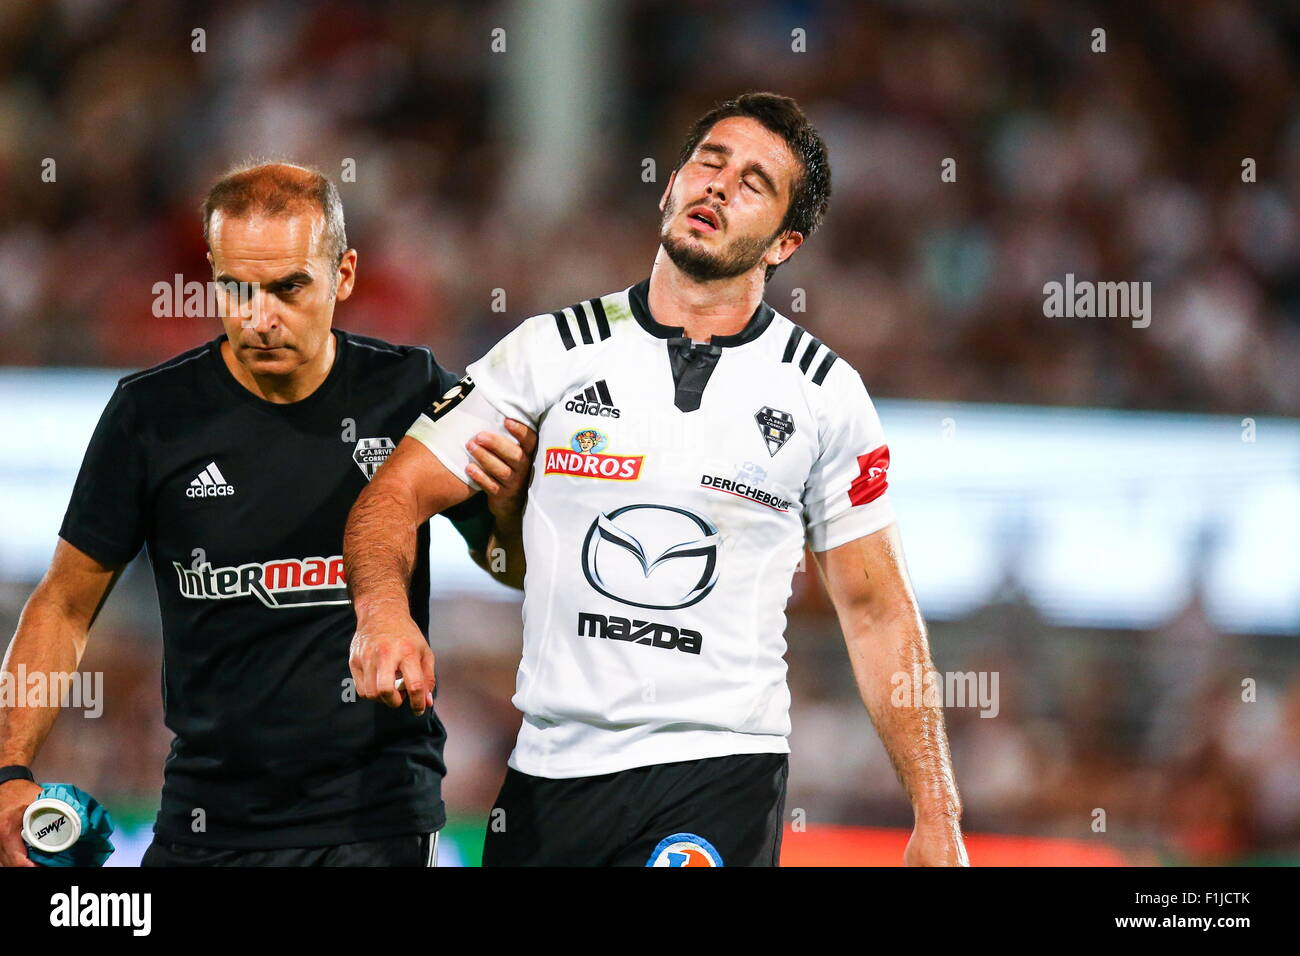 Nicolas Bezy/commotion cerebrale - 29.08.2015 - Brive/Stade Francais - 2eme journee de Top 14.Photo : Manu Blondeau/Icon - Stock Image